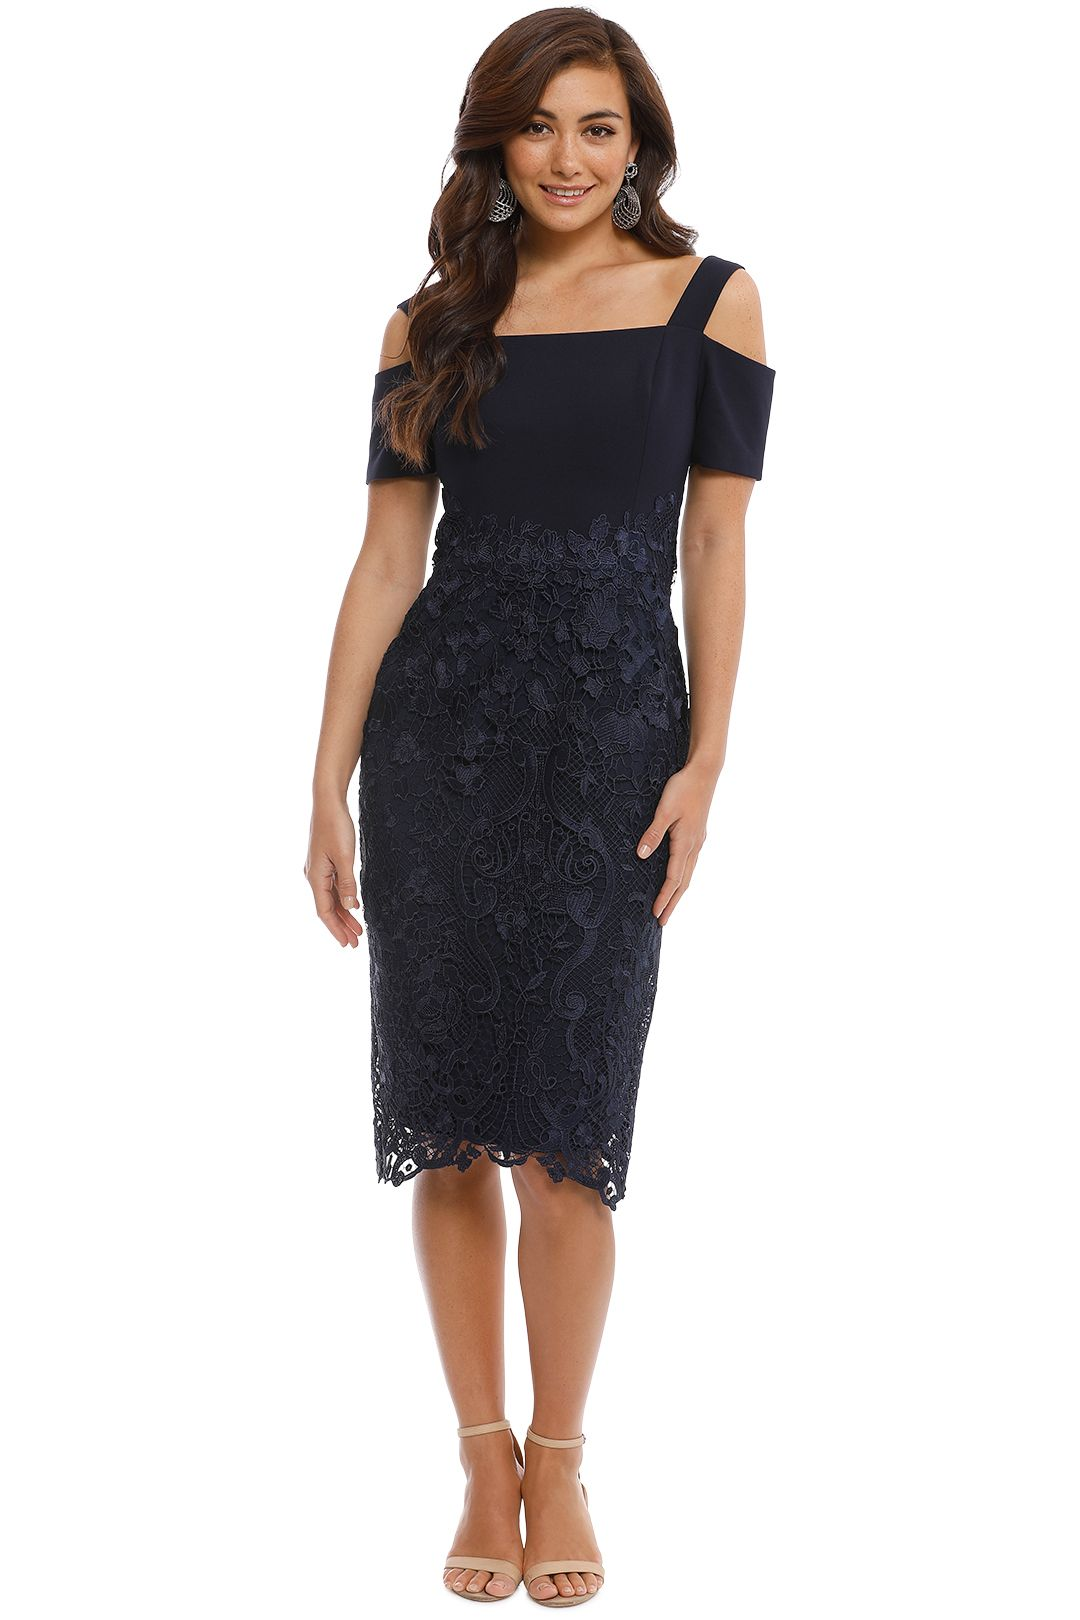 Grace and Hart - Breathless Love Midi - Navy - Front